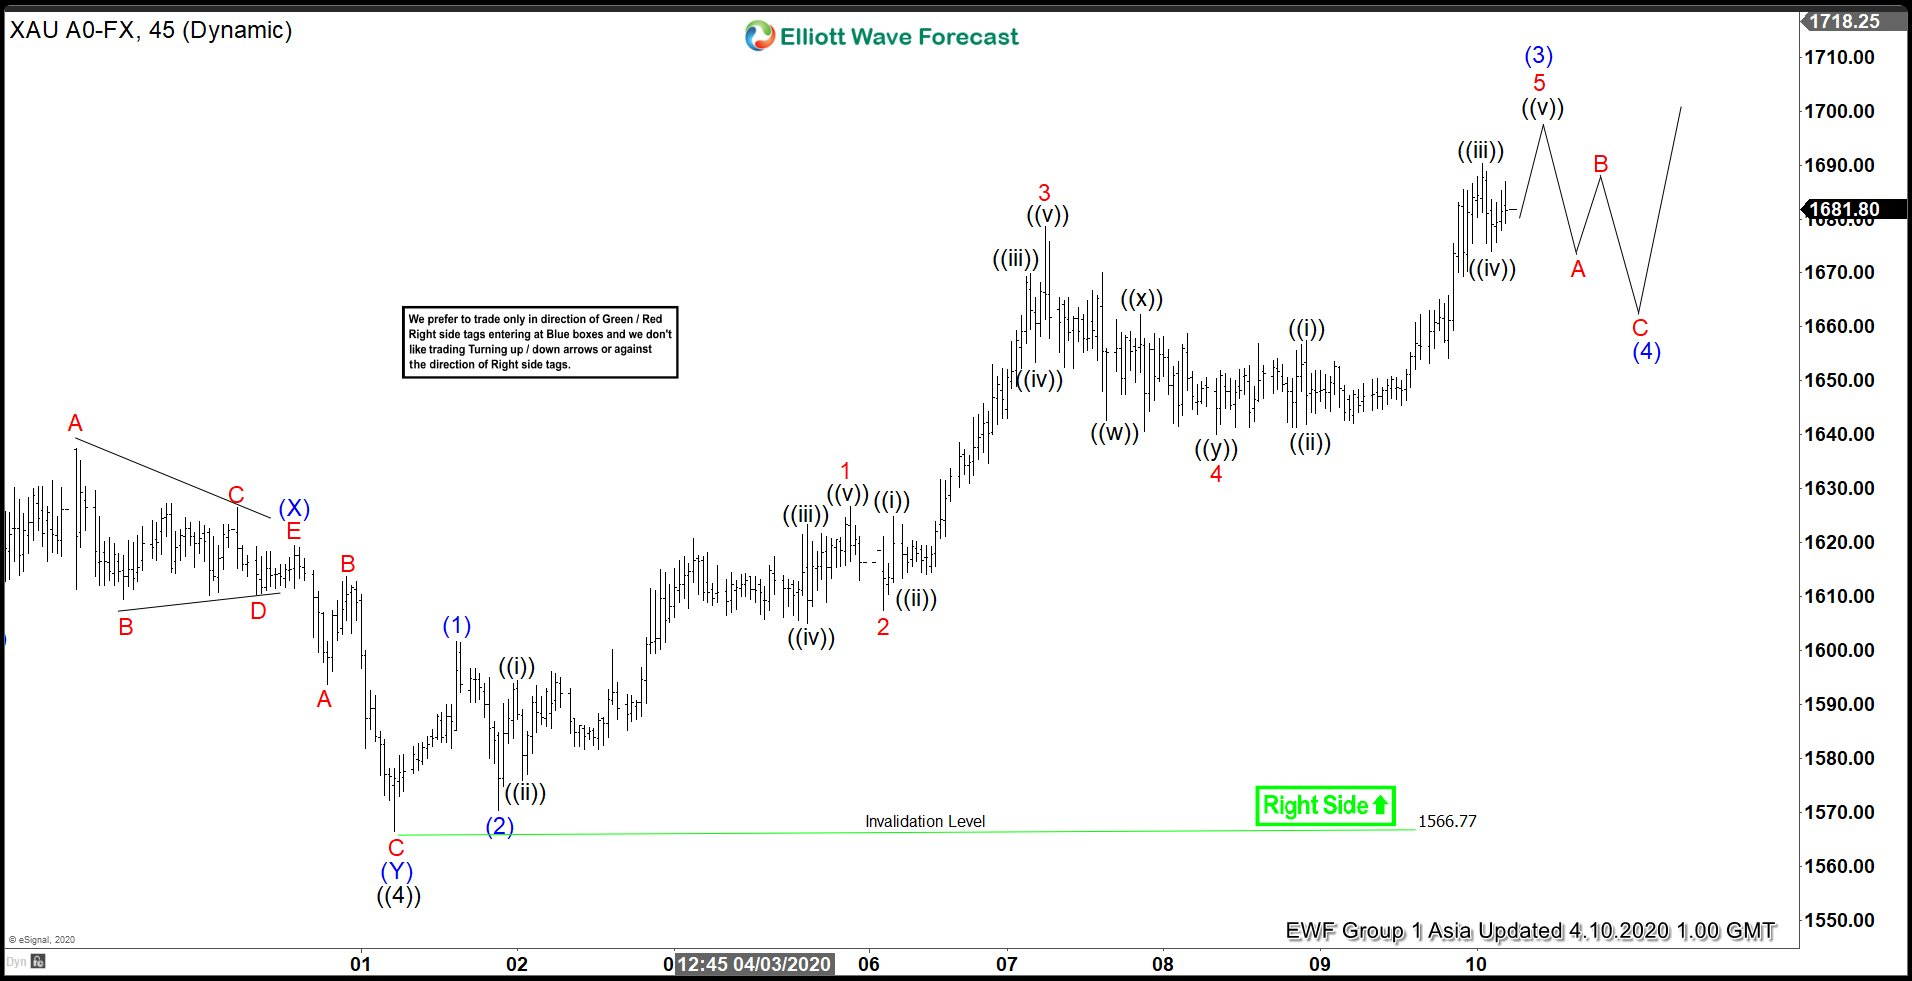 Elliott Wave View: Gold Rallying as an Impulse